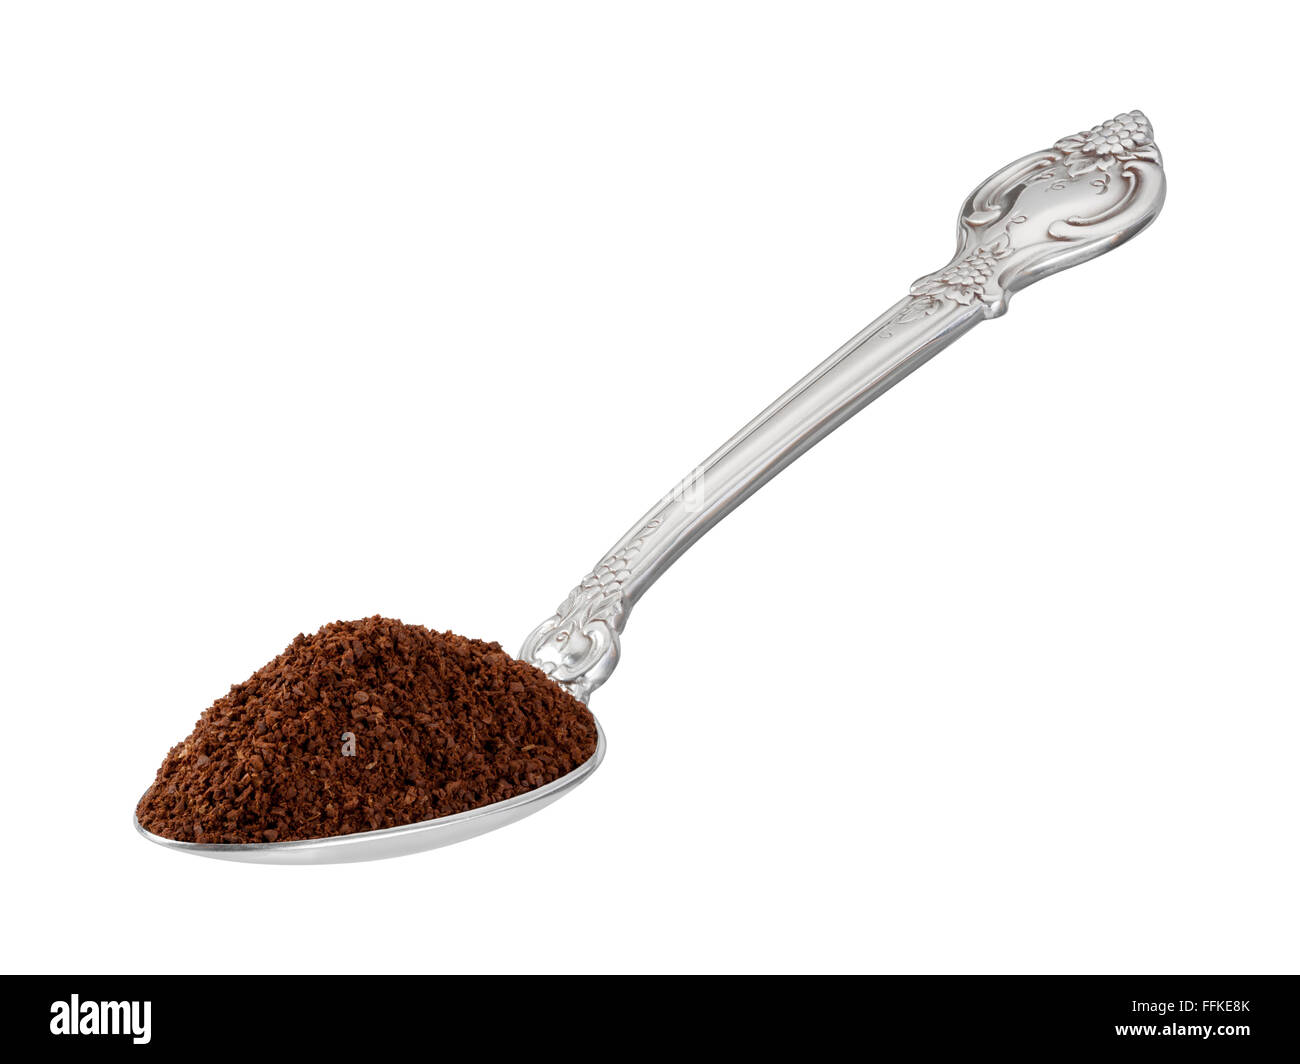 Scoop of Ground Coffee in a Spoon. The image is a cut out, isolated on a white background. - Stock Image